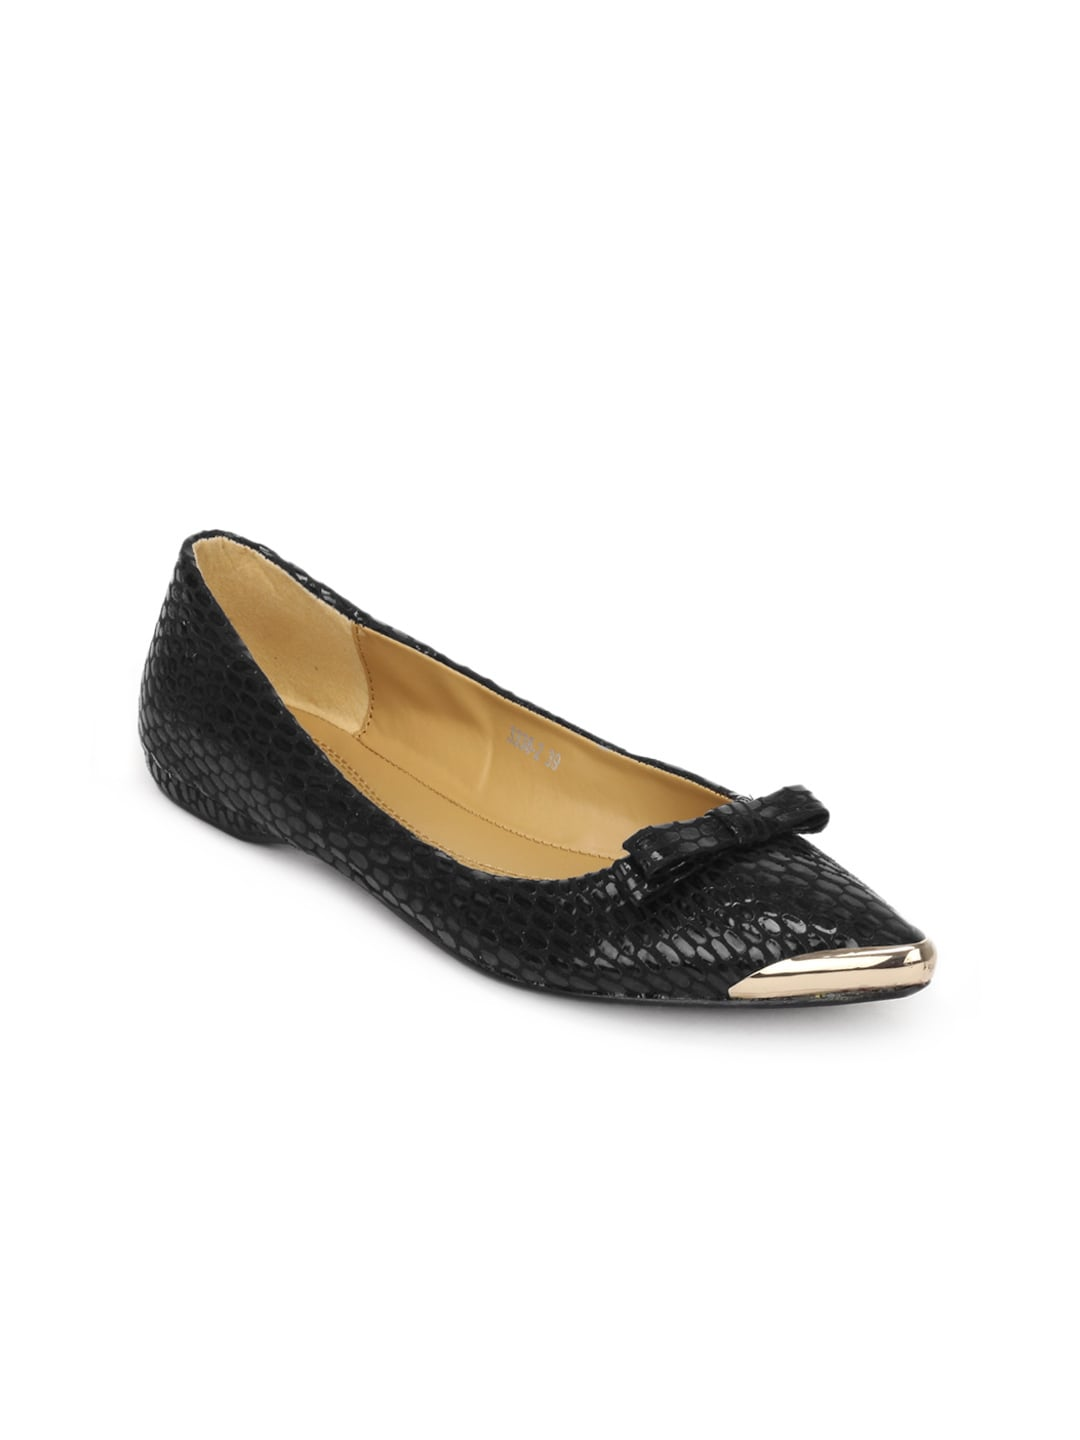 Jove-Women-Black-Flat-Shoes_ca21d7eb317c66756405a94178017b81_images